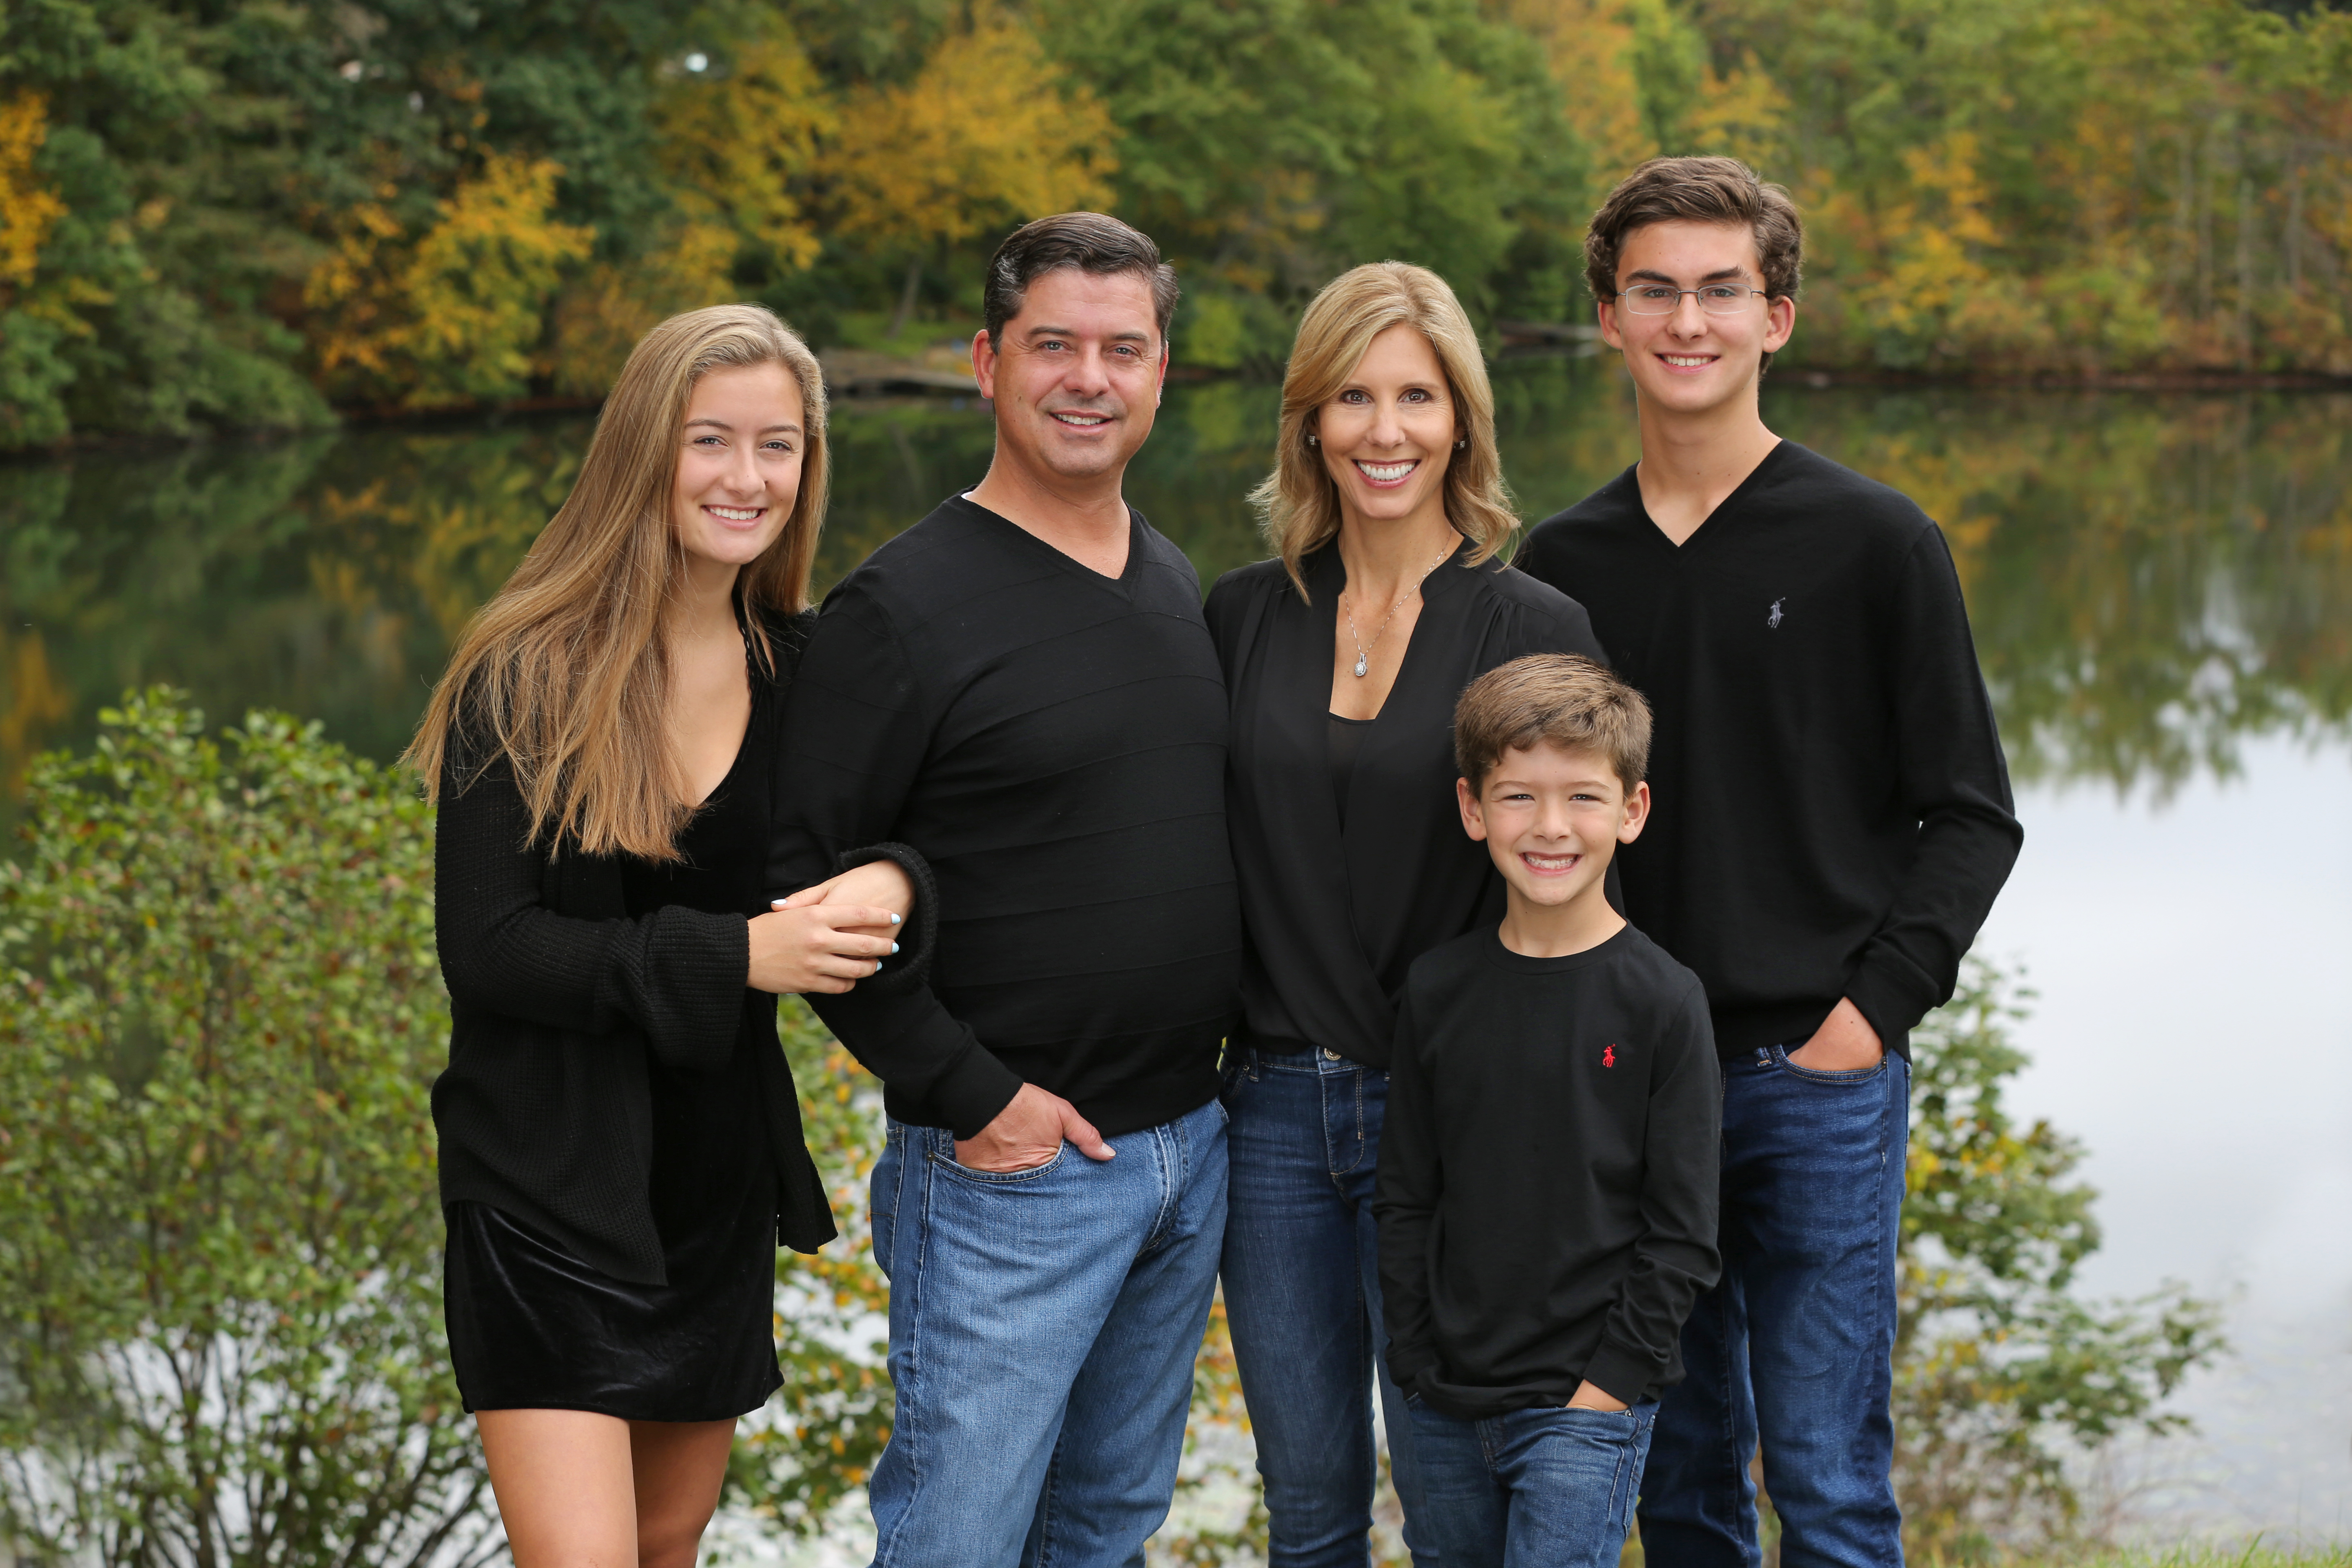 Boonton family photographer